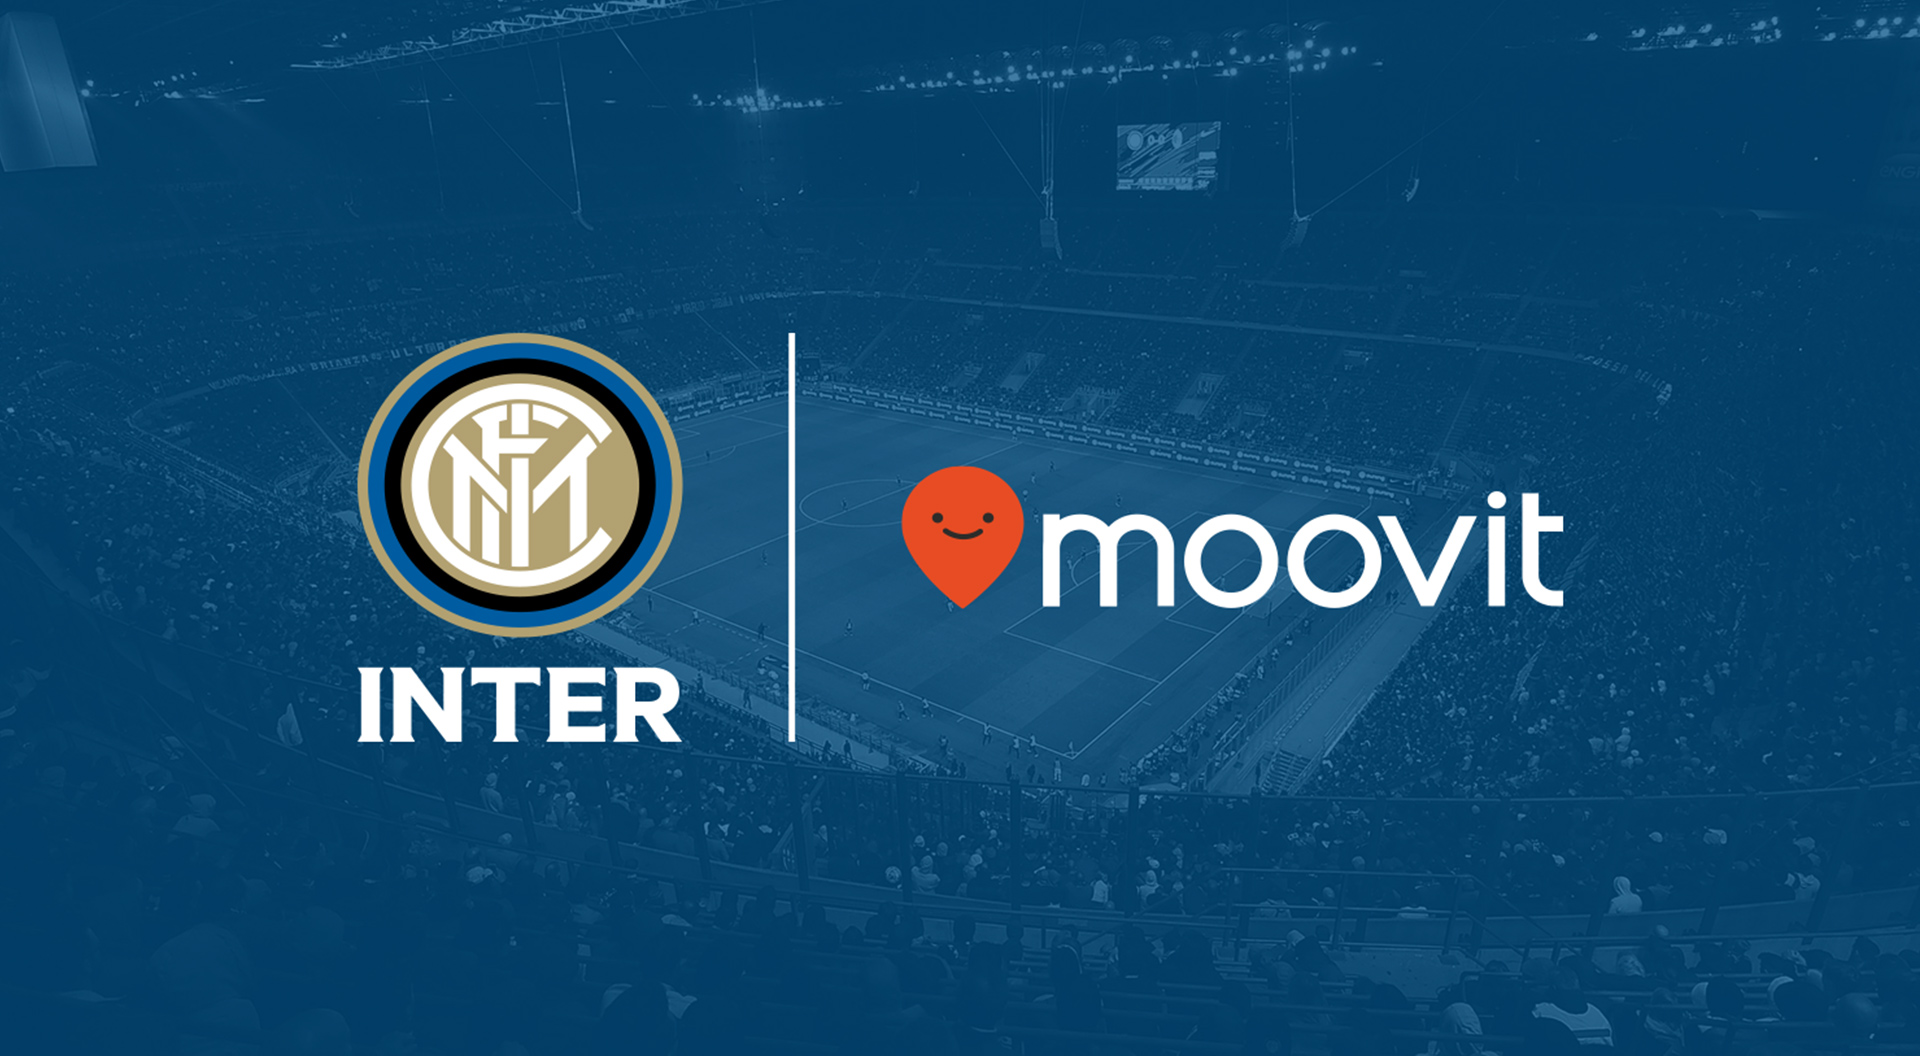 Moovit - Inter Milan partnership